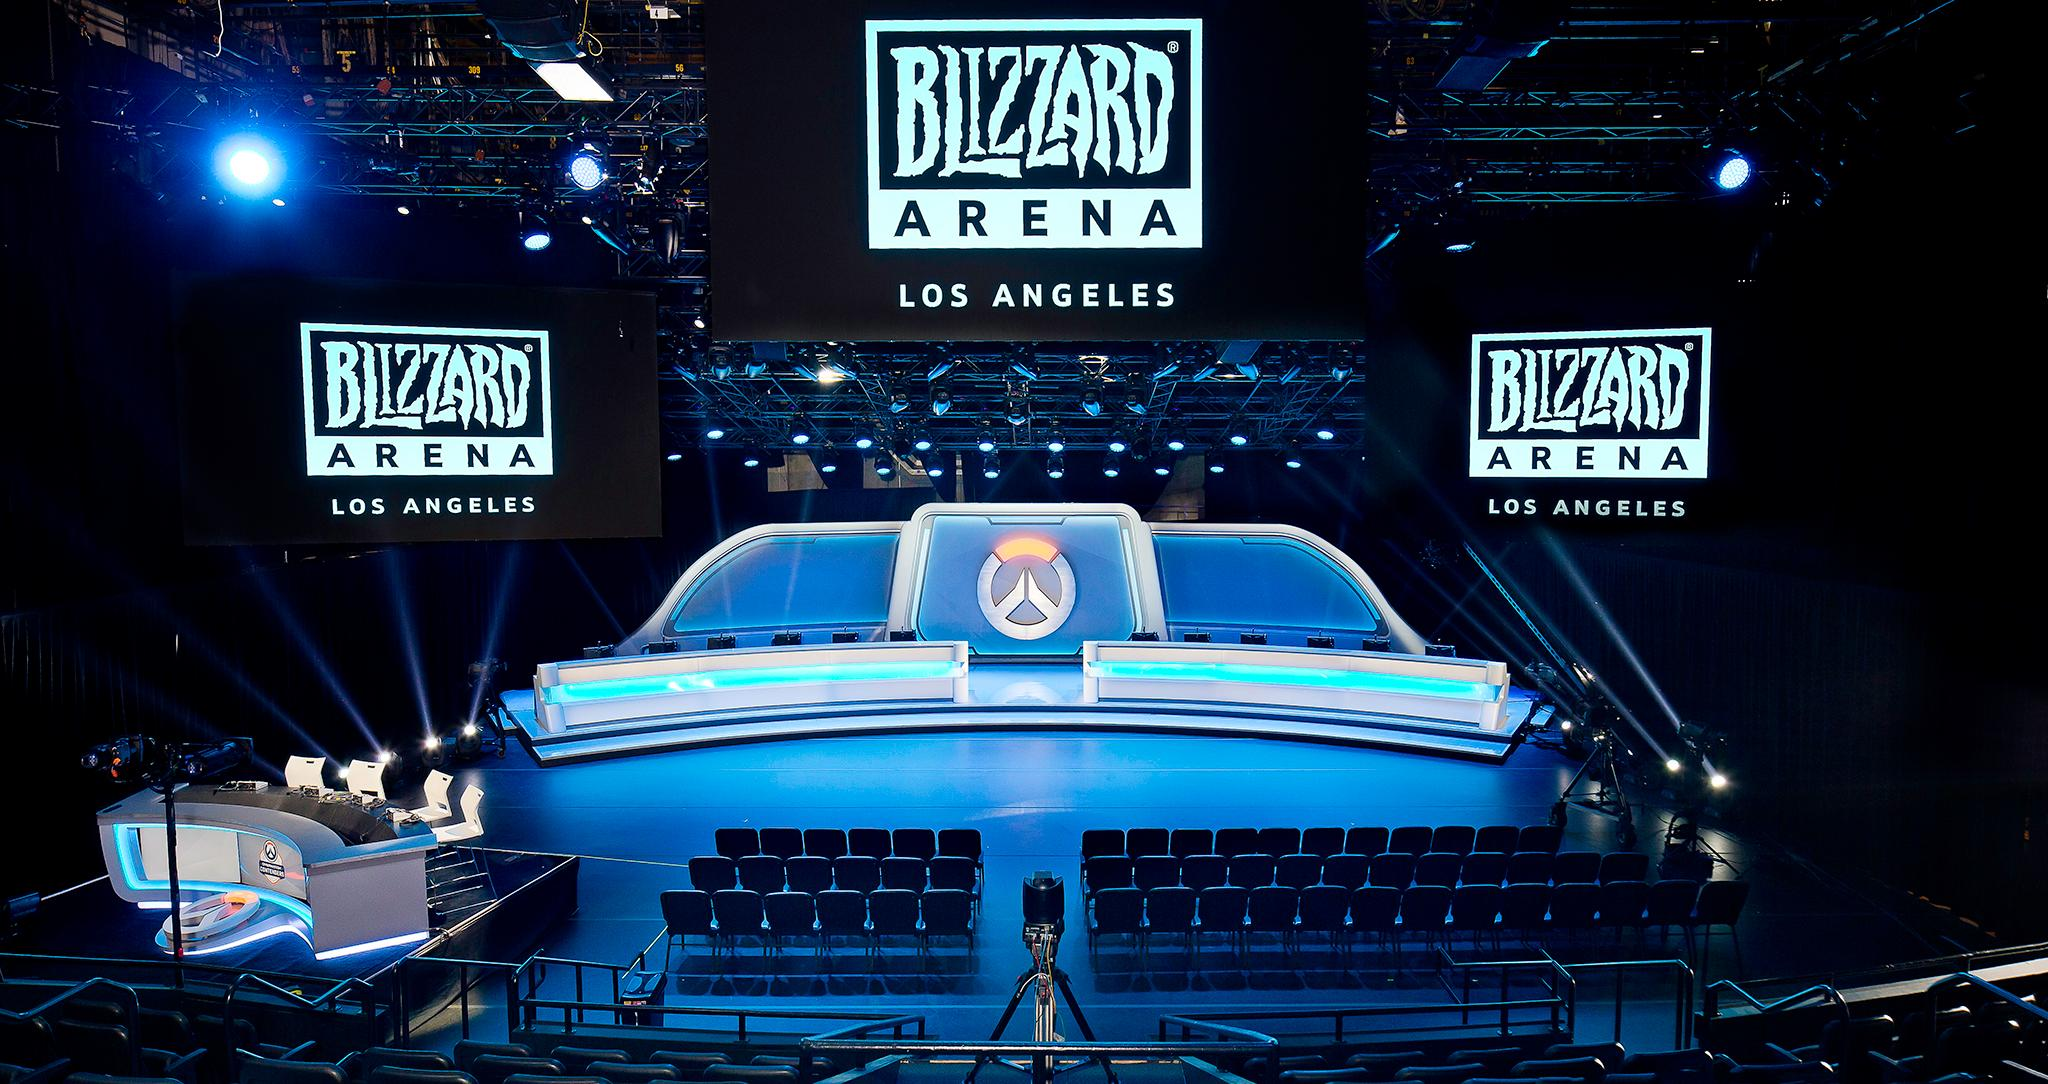 Overwatch League finals are coming to NYC